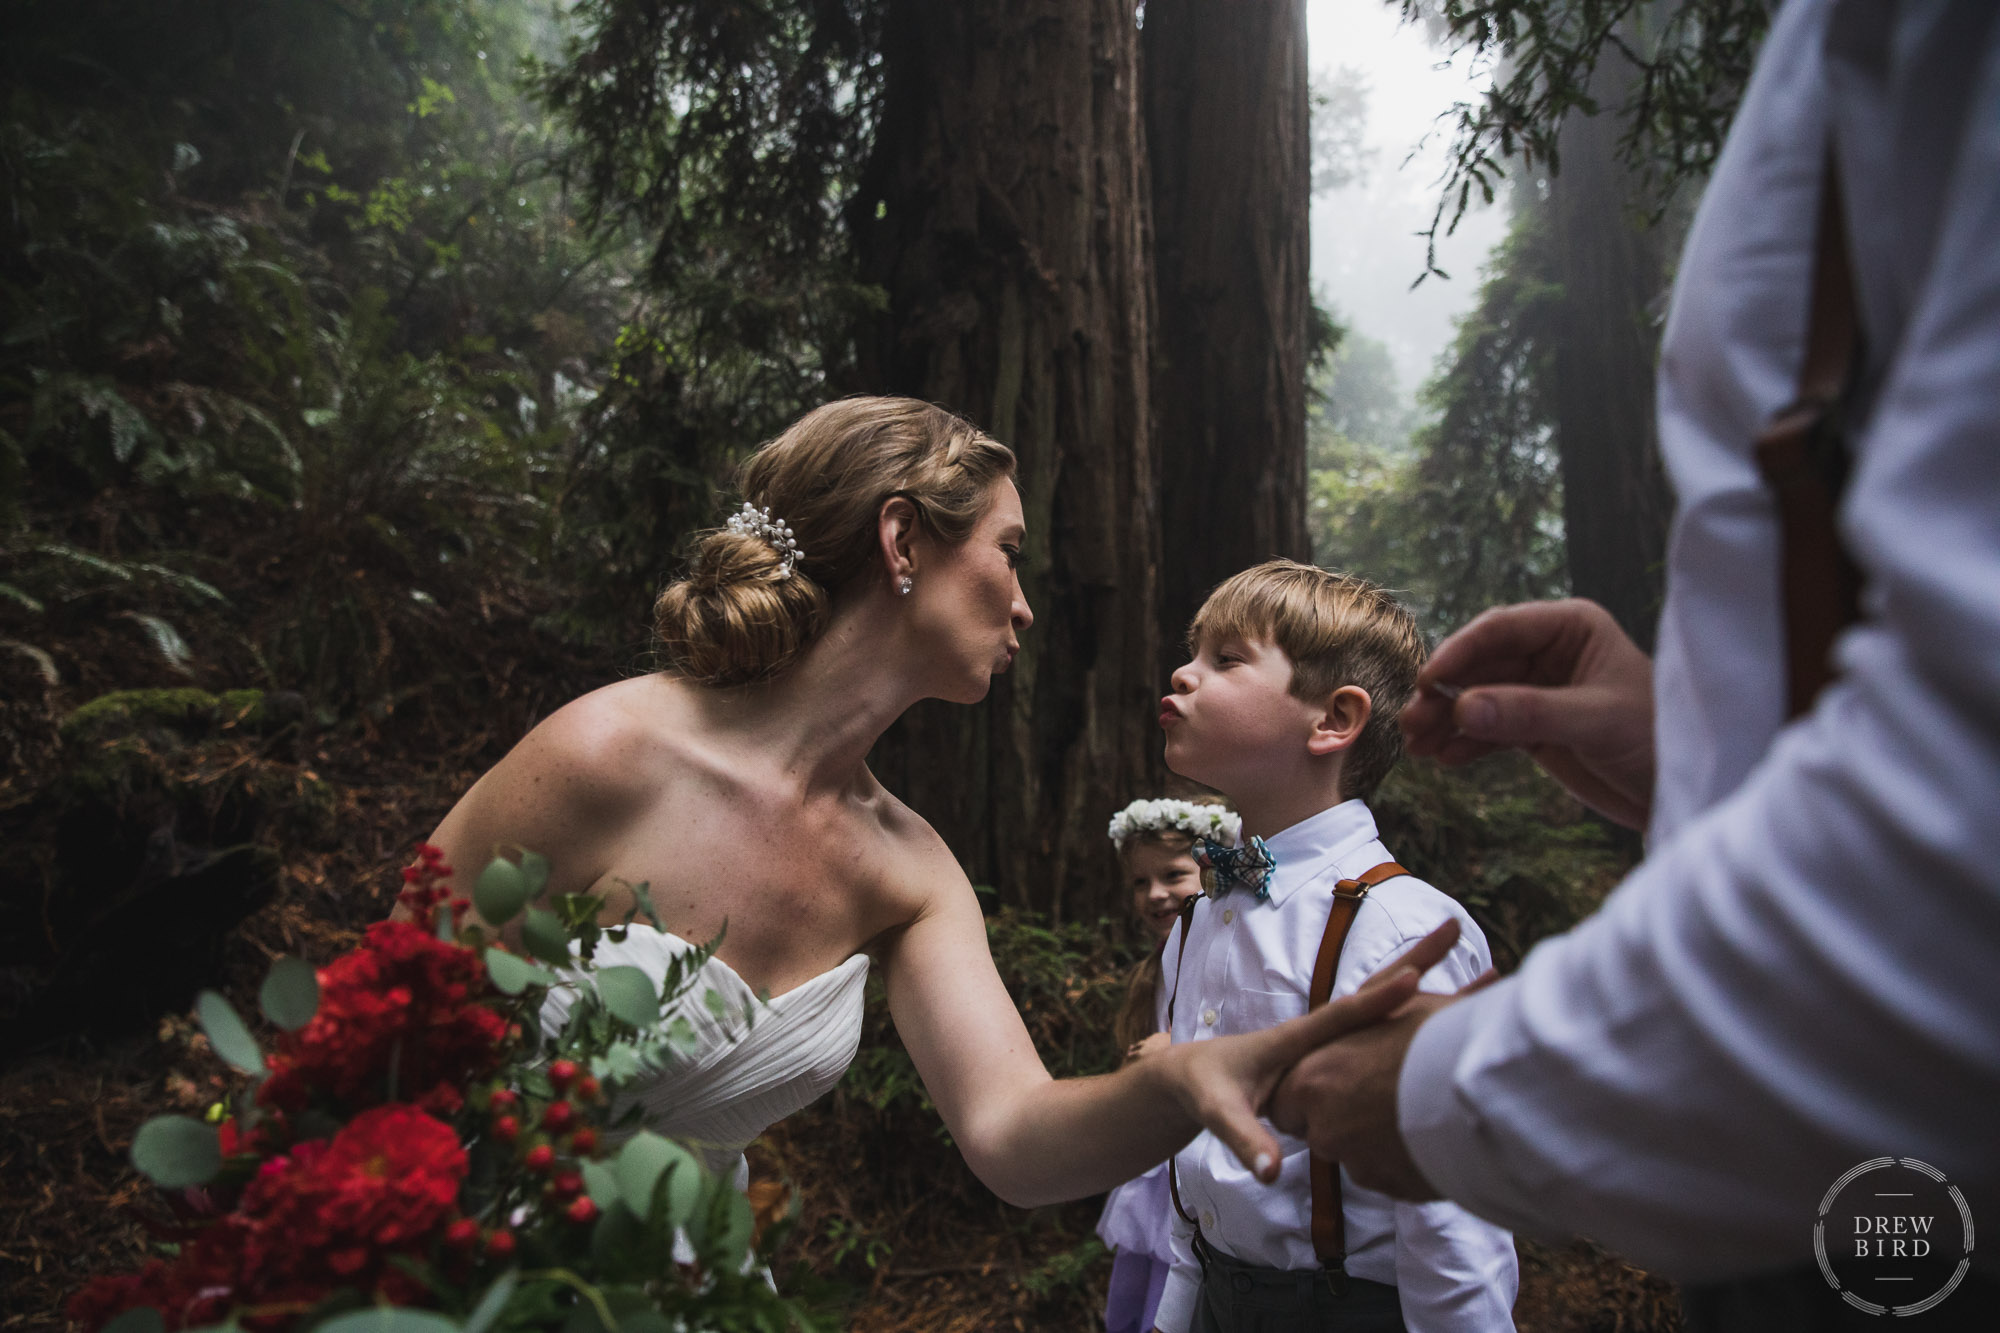 Bride leans over to kiss ring bearer during redwood forest elopement wedding ceremony. San Francisco wedding photojournalism by Drew Bird Photo.